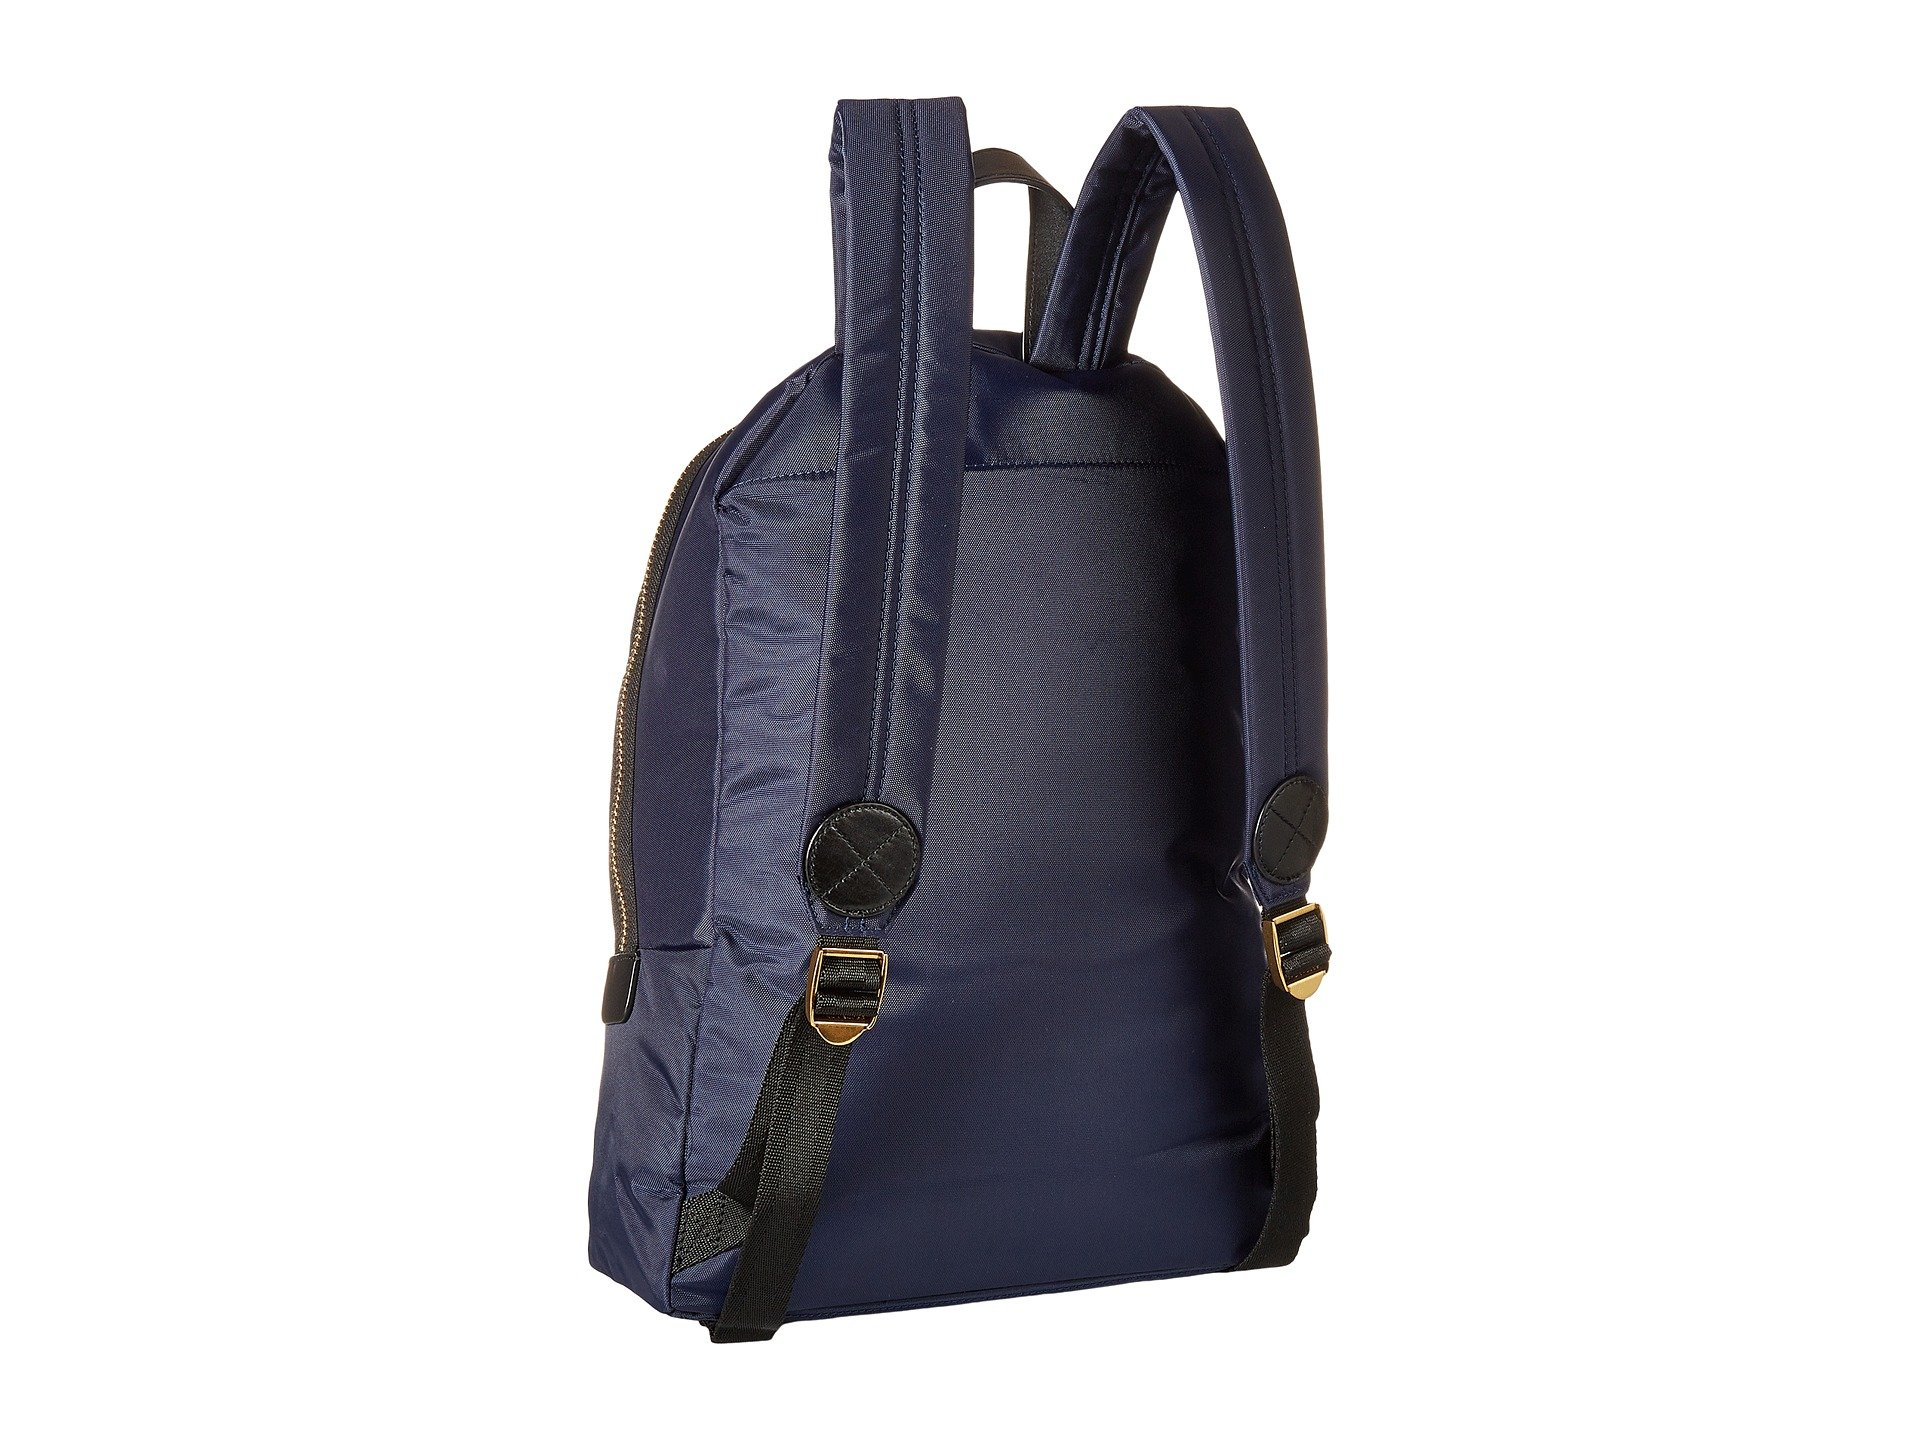 62833cc2a6a1 Marc Jacobs Nylon Biker Backpack at Luxury.Zappos.com